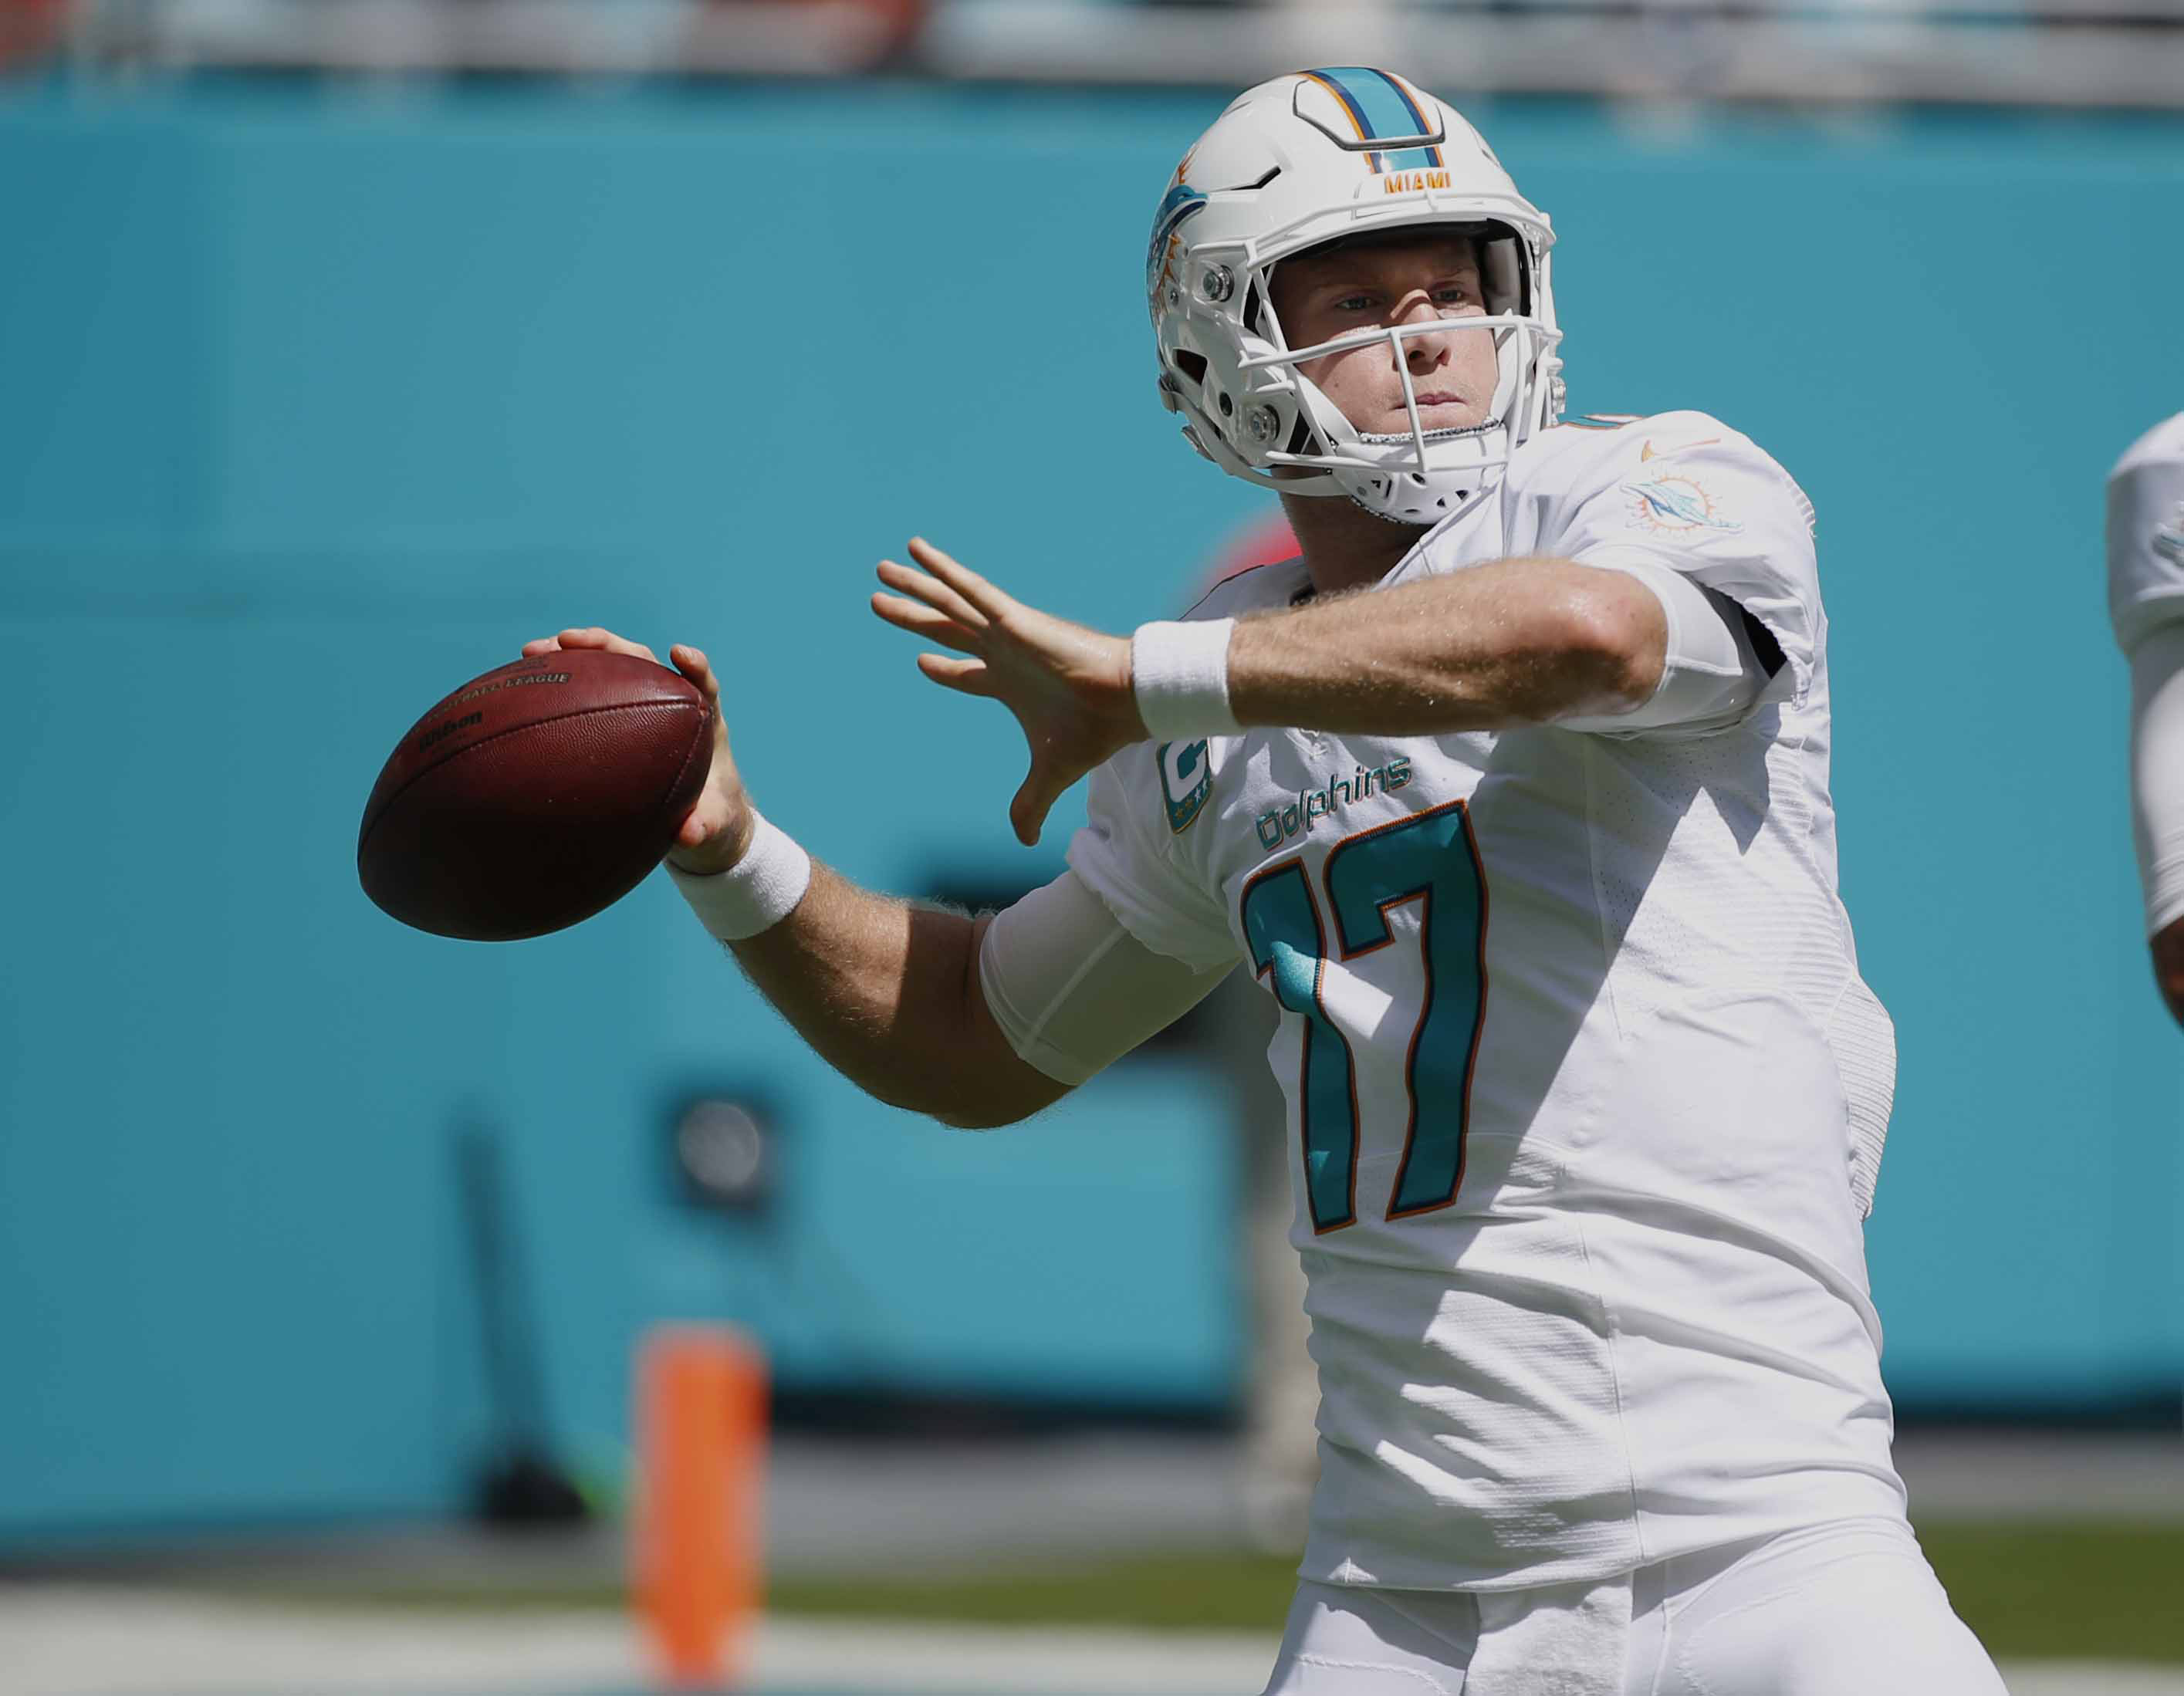 FILE - In this Sept. 25, 2016, file photo, Miami Dolphins quarterback Ryan Tannehill (17) warms up before an NFL football game against the Cleveland Browns, in Miami Gardens, Fla. Tannehill has been sacked more than 200 times since he joined the Miami Dol